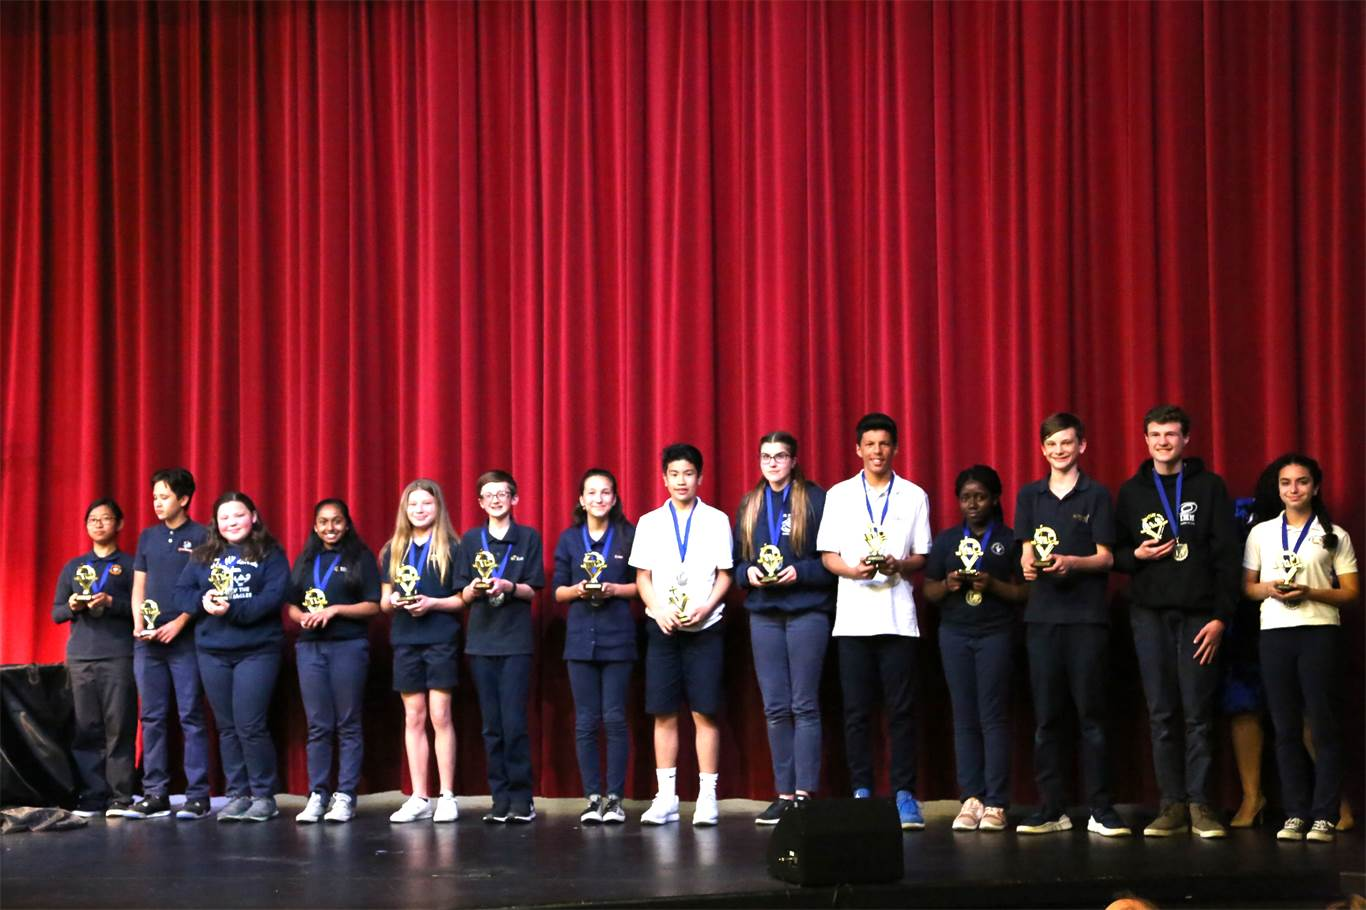 Grade 8 finalists. Photo by Marla Ellis